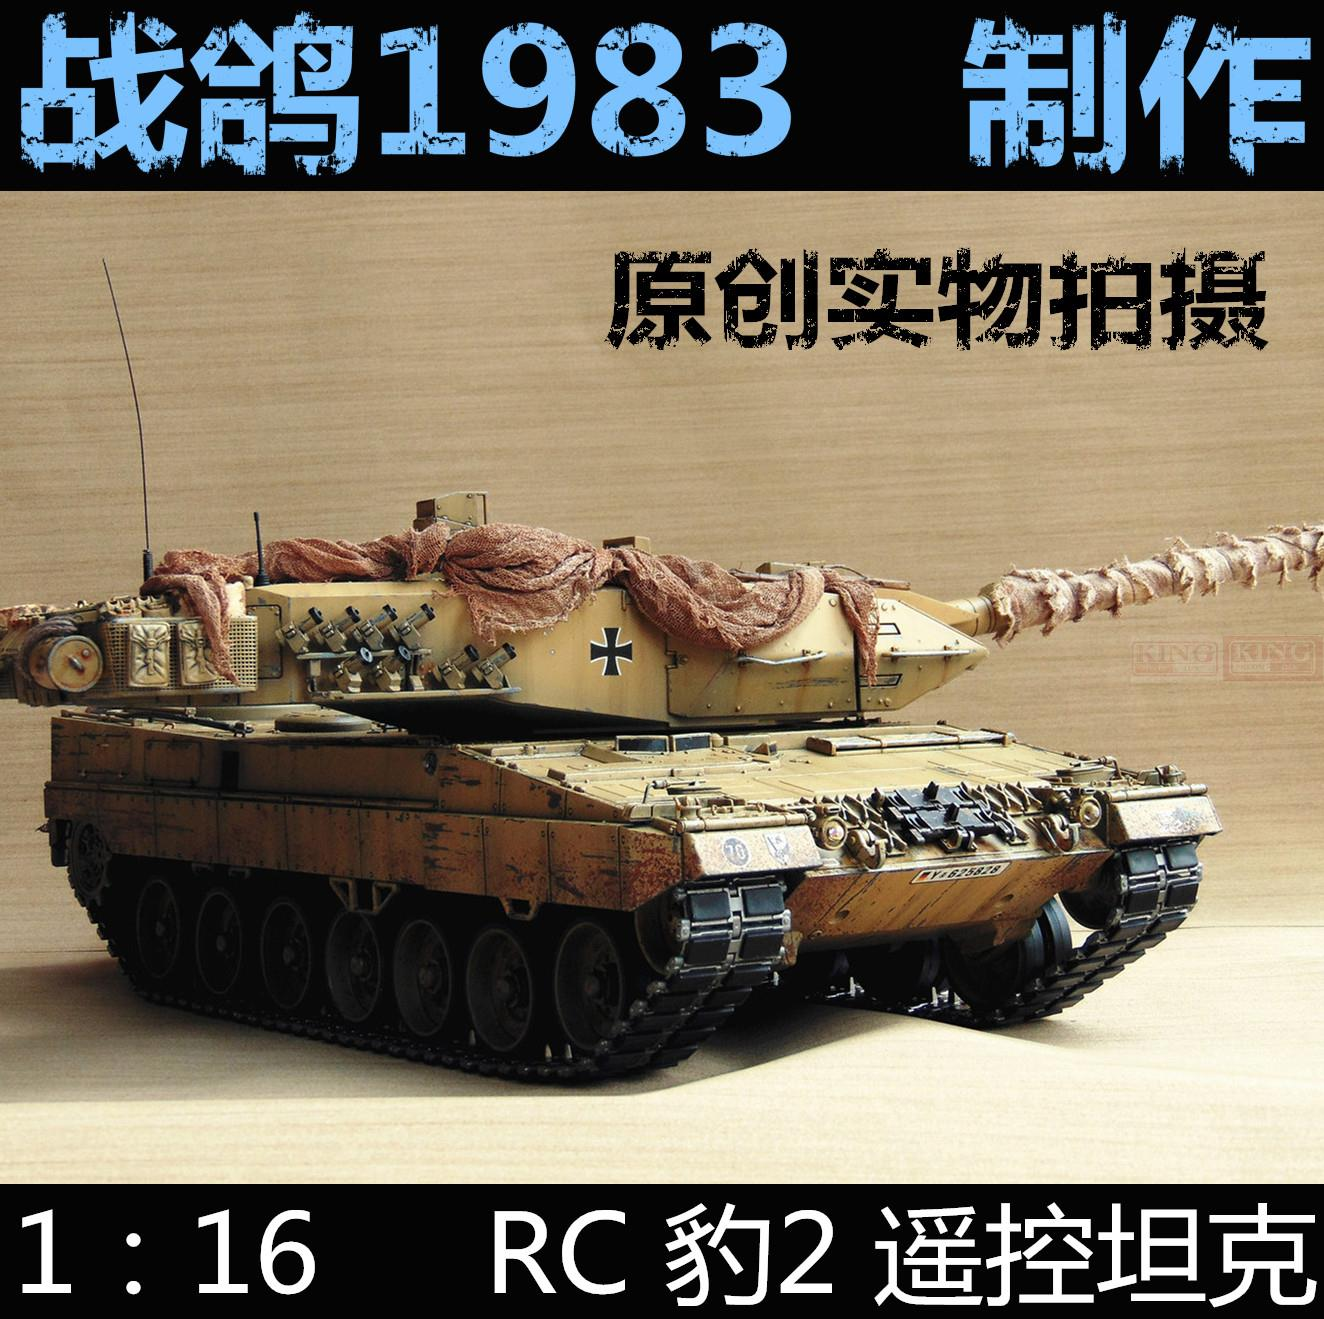 KNL HOBBY Heng Long, 1: 16RC Leopard 2 tank model remote control two foundry heavy coating of paint to do the old knl hobby voyager model pe35418 m1a1 tusk1 ubilan